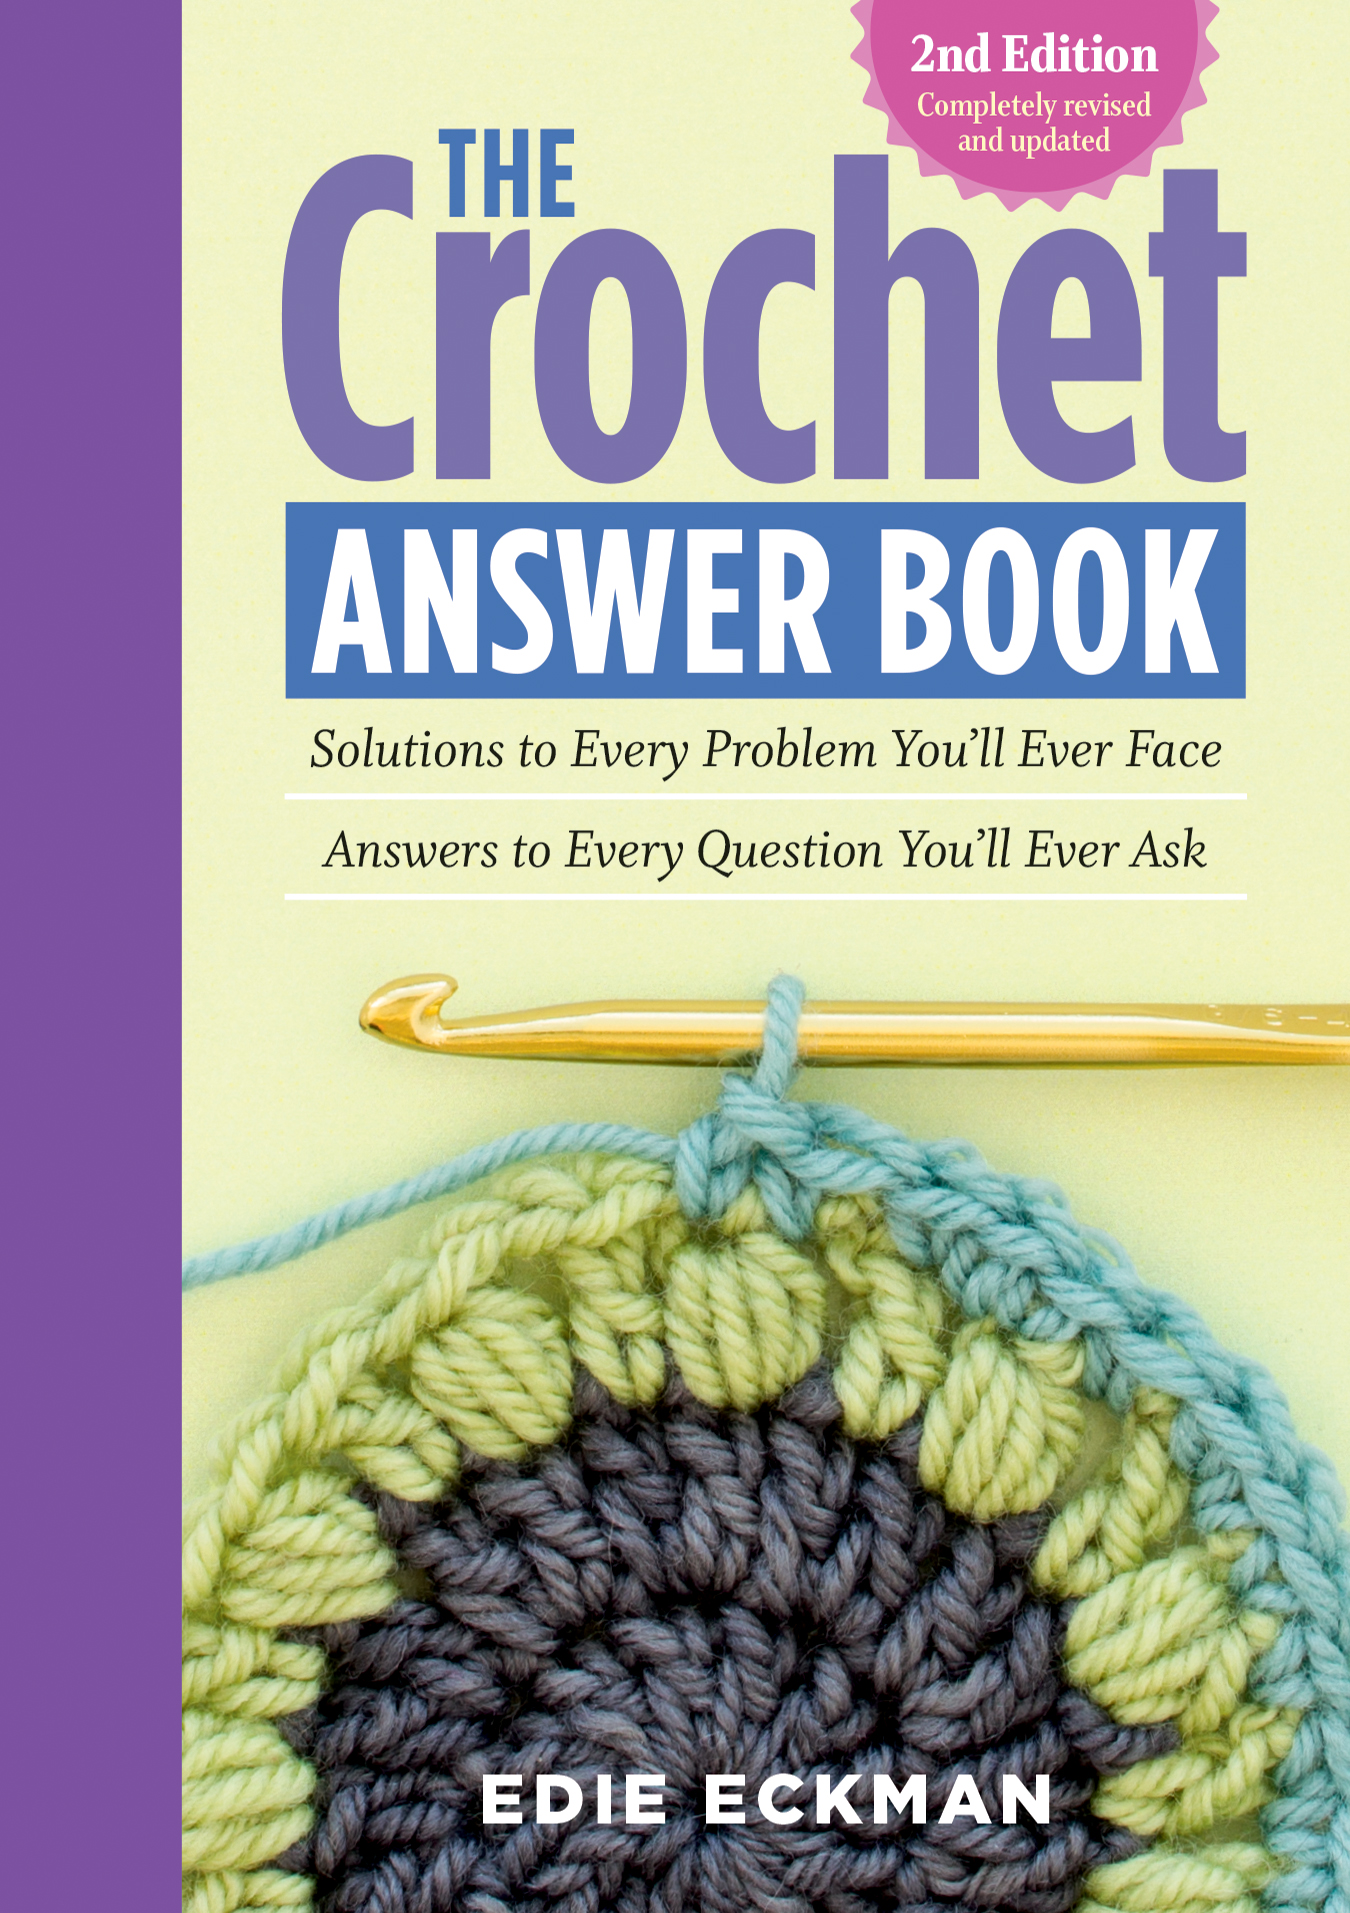 The Crochet Answer Book, 2nd Edition Solutions to Every Problem You'll Ever Face; Answers to Every Question You'll Ever Ask - Edie Eckman